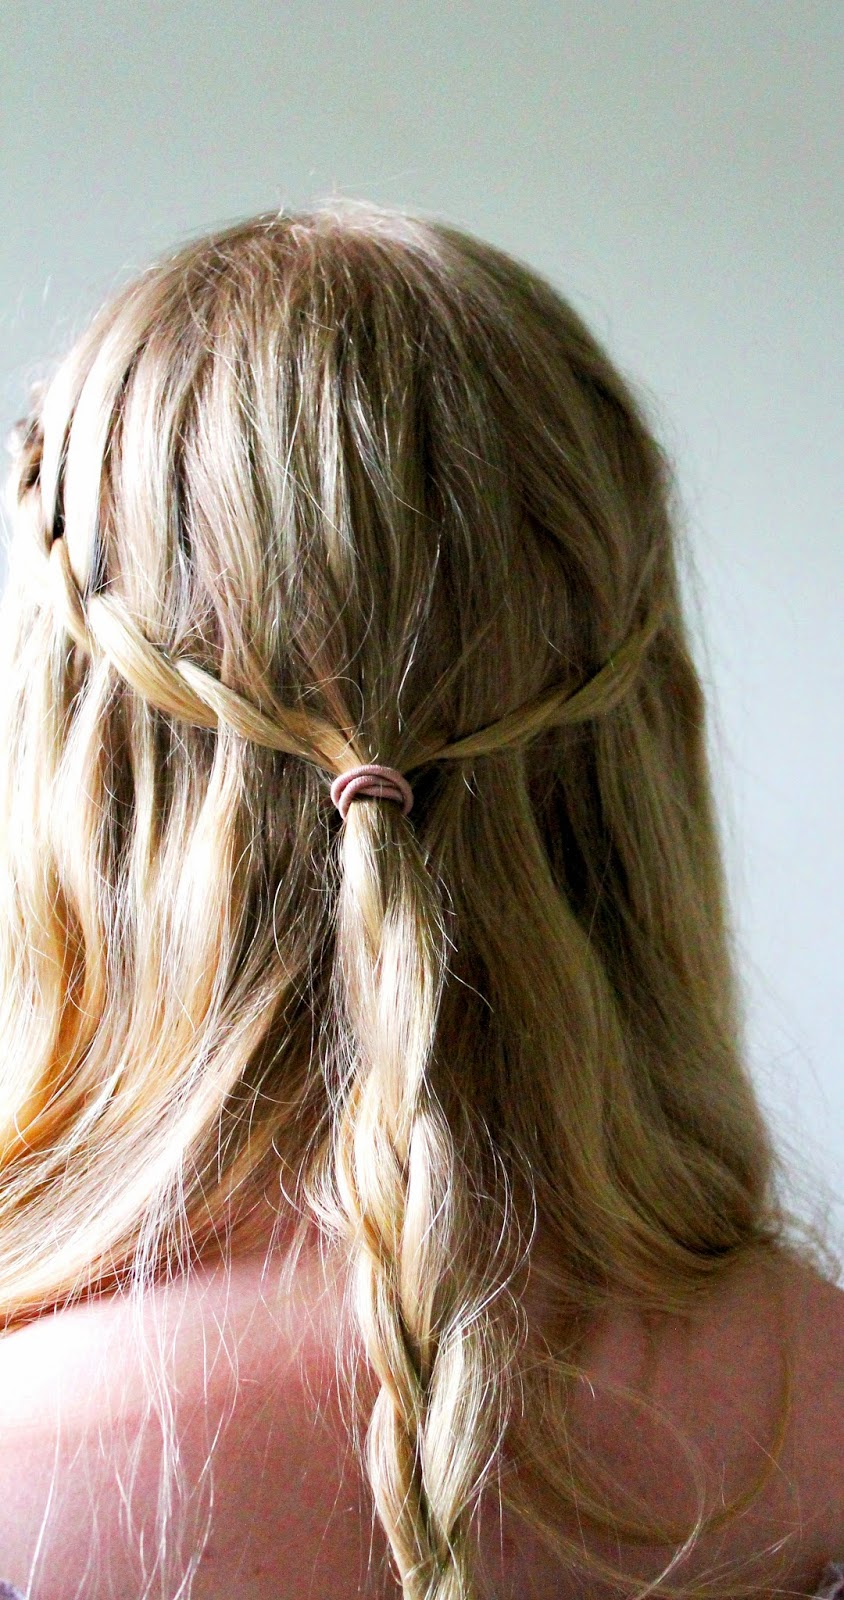 Game of thrones waterfall braid how to | Alinan kotona blog